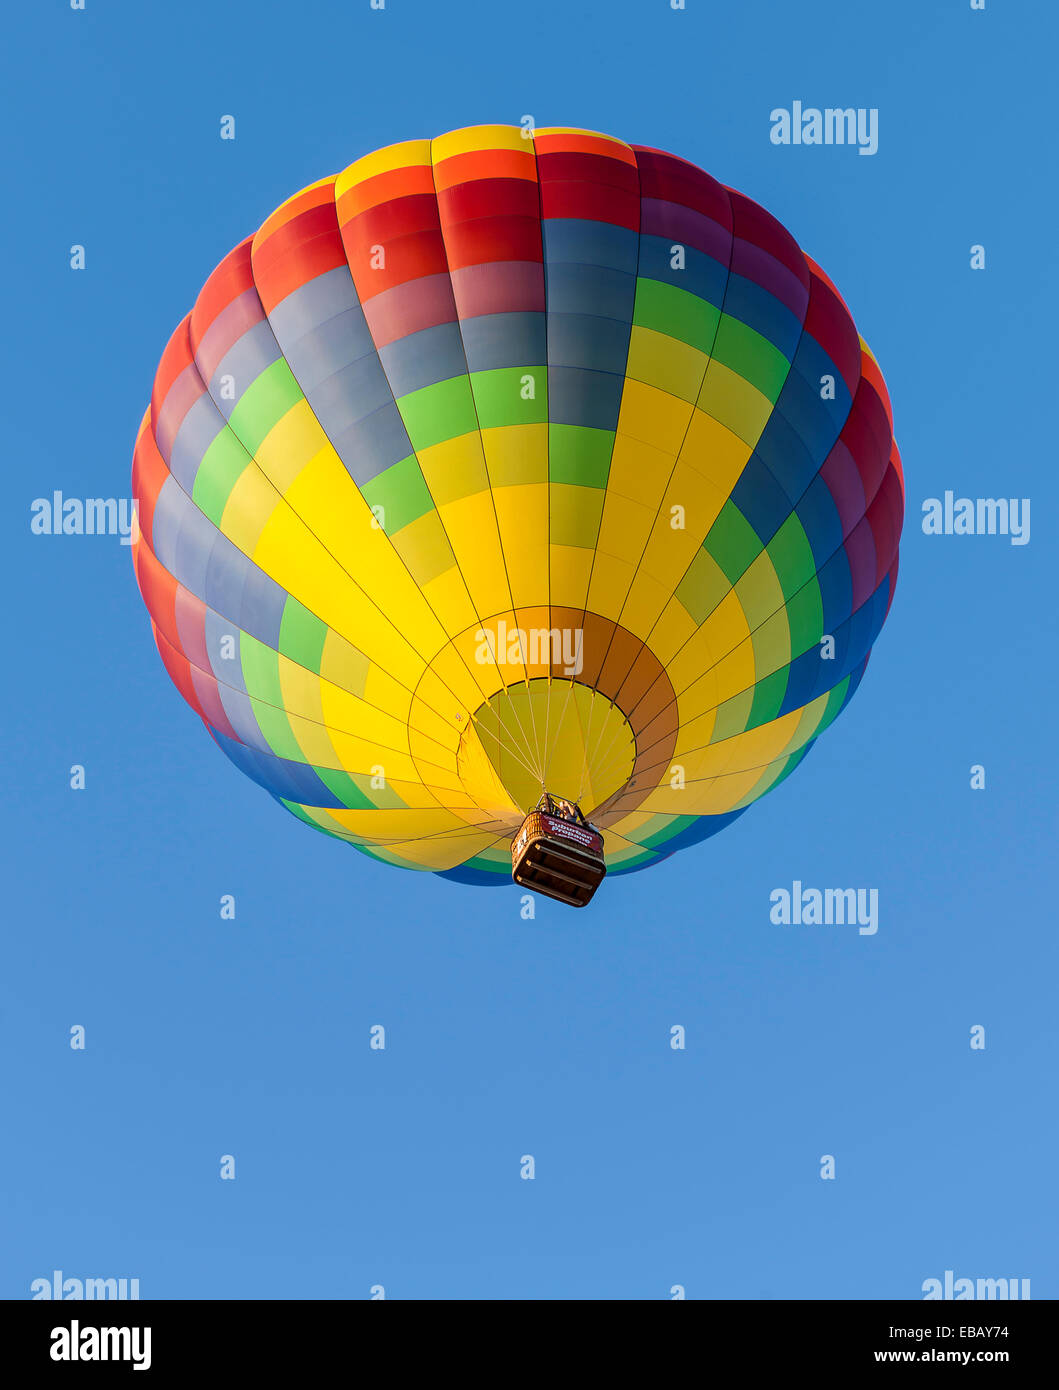 Queesbury, New York, USA - September 20, 2013: A hot air balloon soars in the sky at Adirondack Balloon Festival - Stock Image